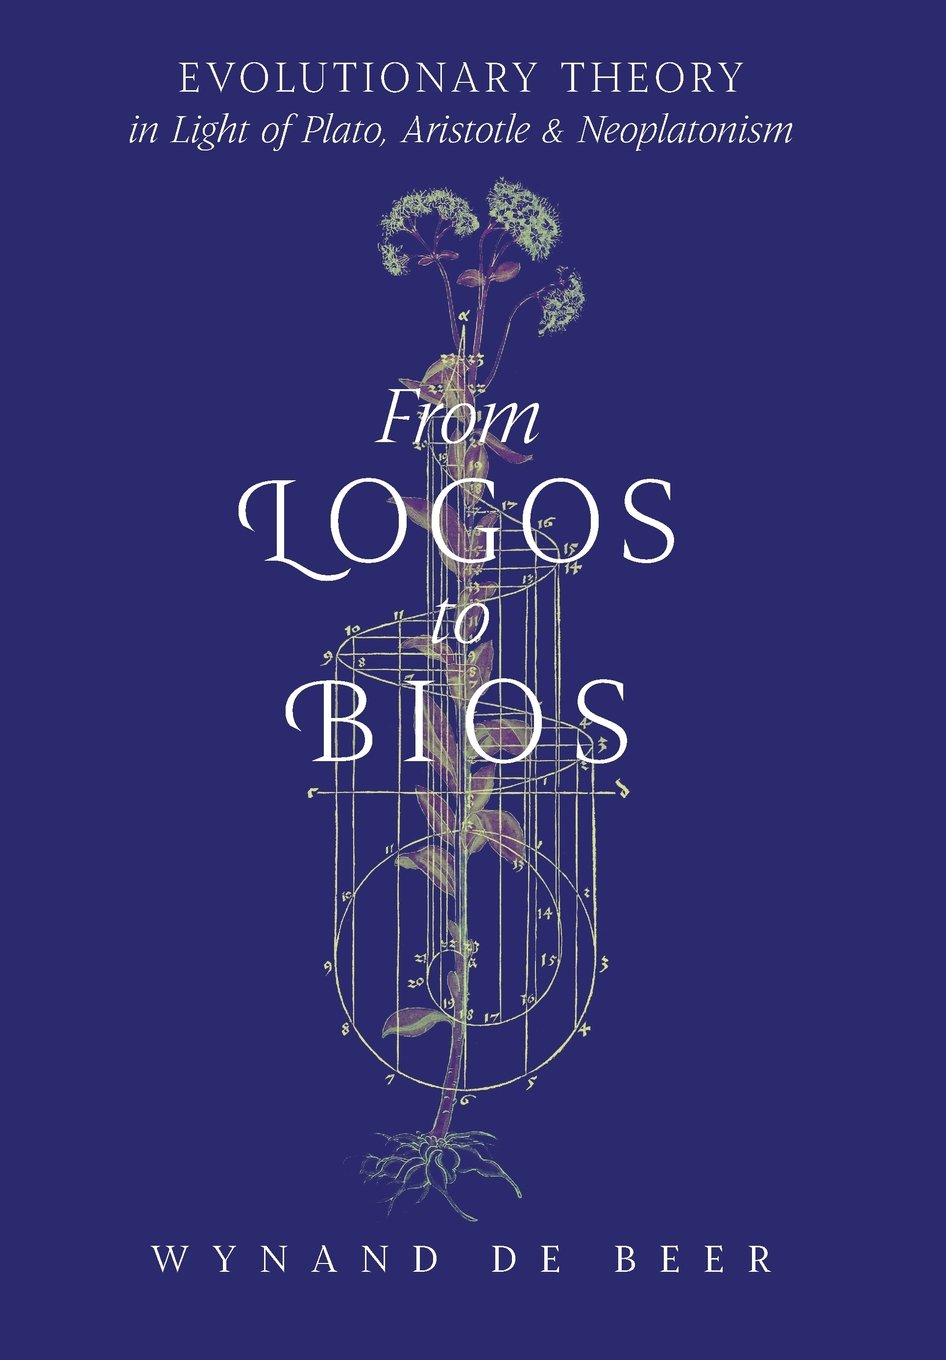 From Logos to Bios: Evolutionary Theory in Light of Plato, Aristotle & Neoplatonism ebook